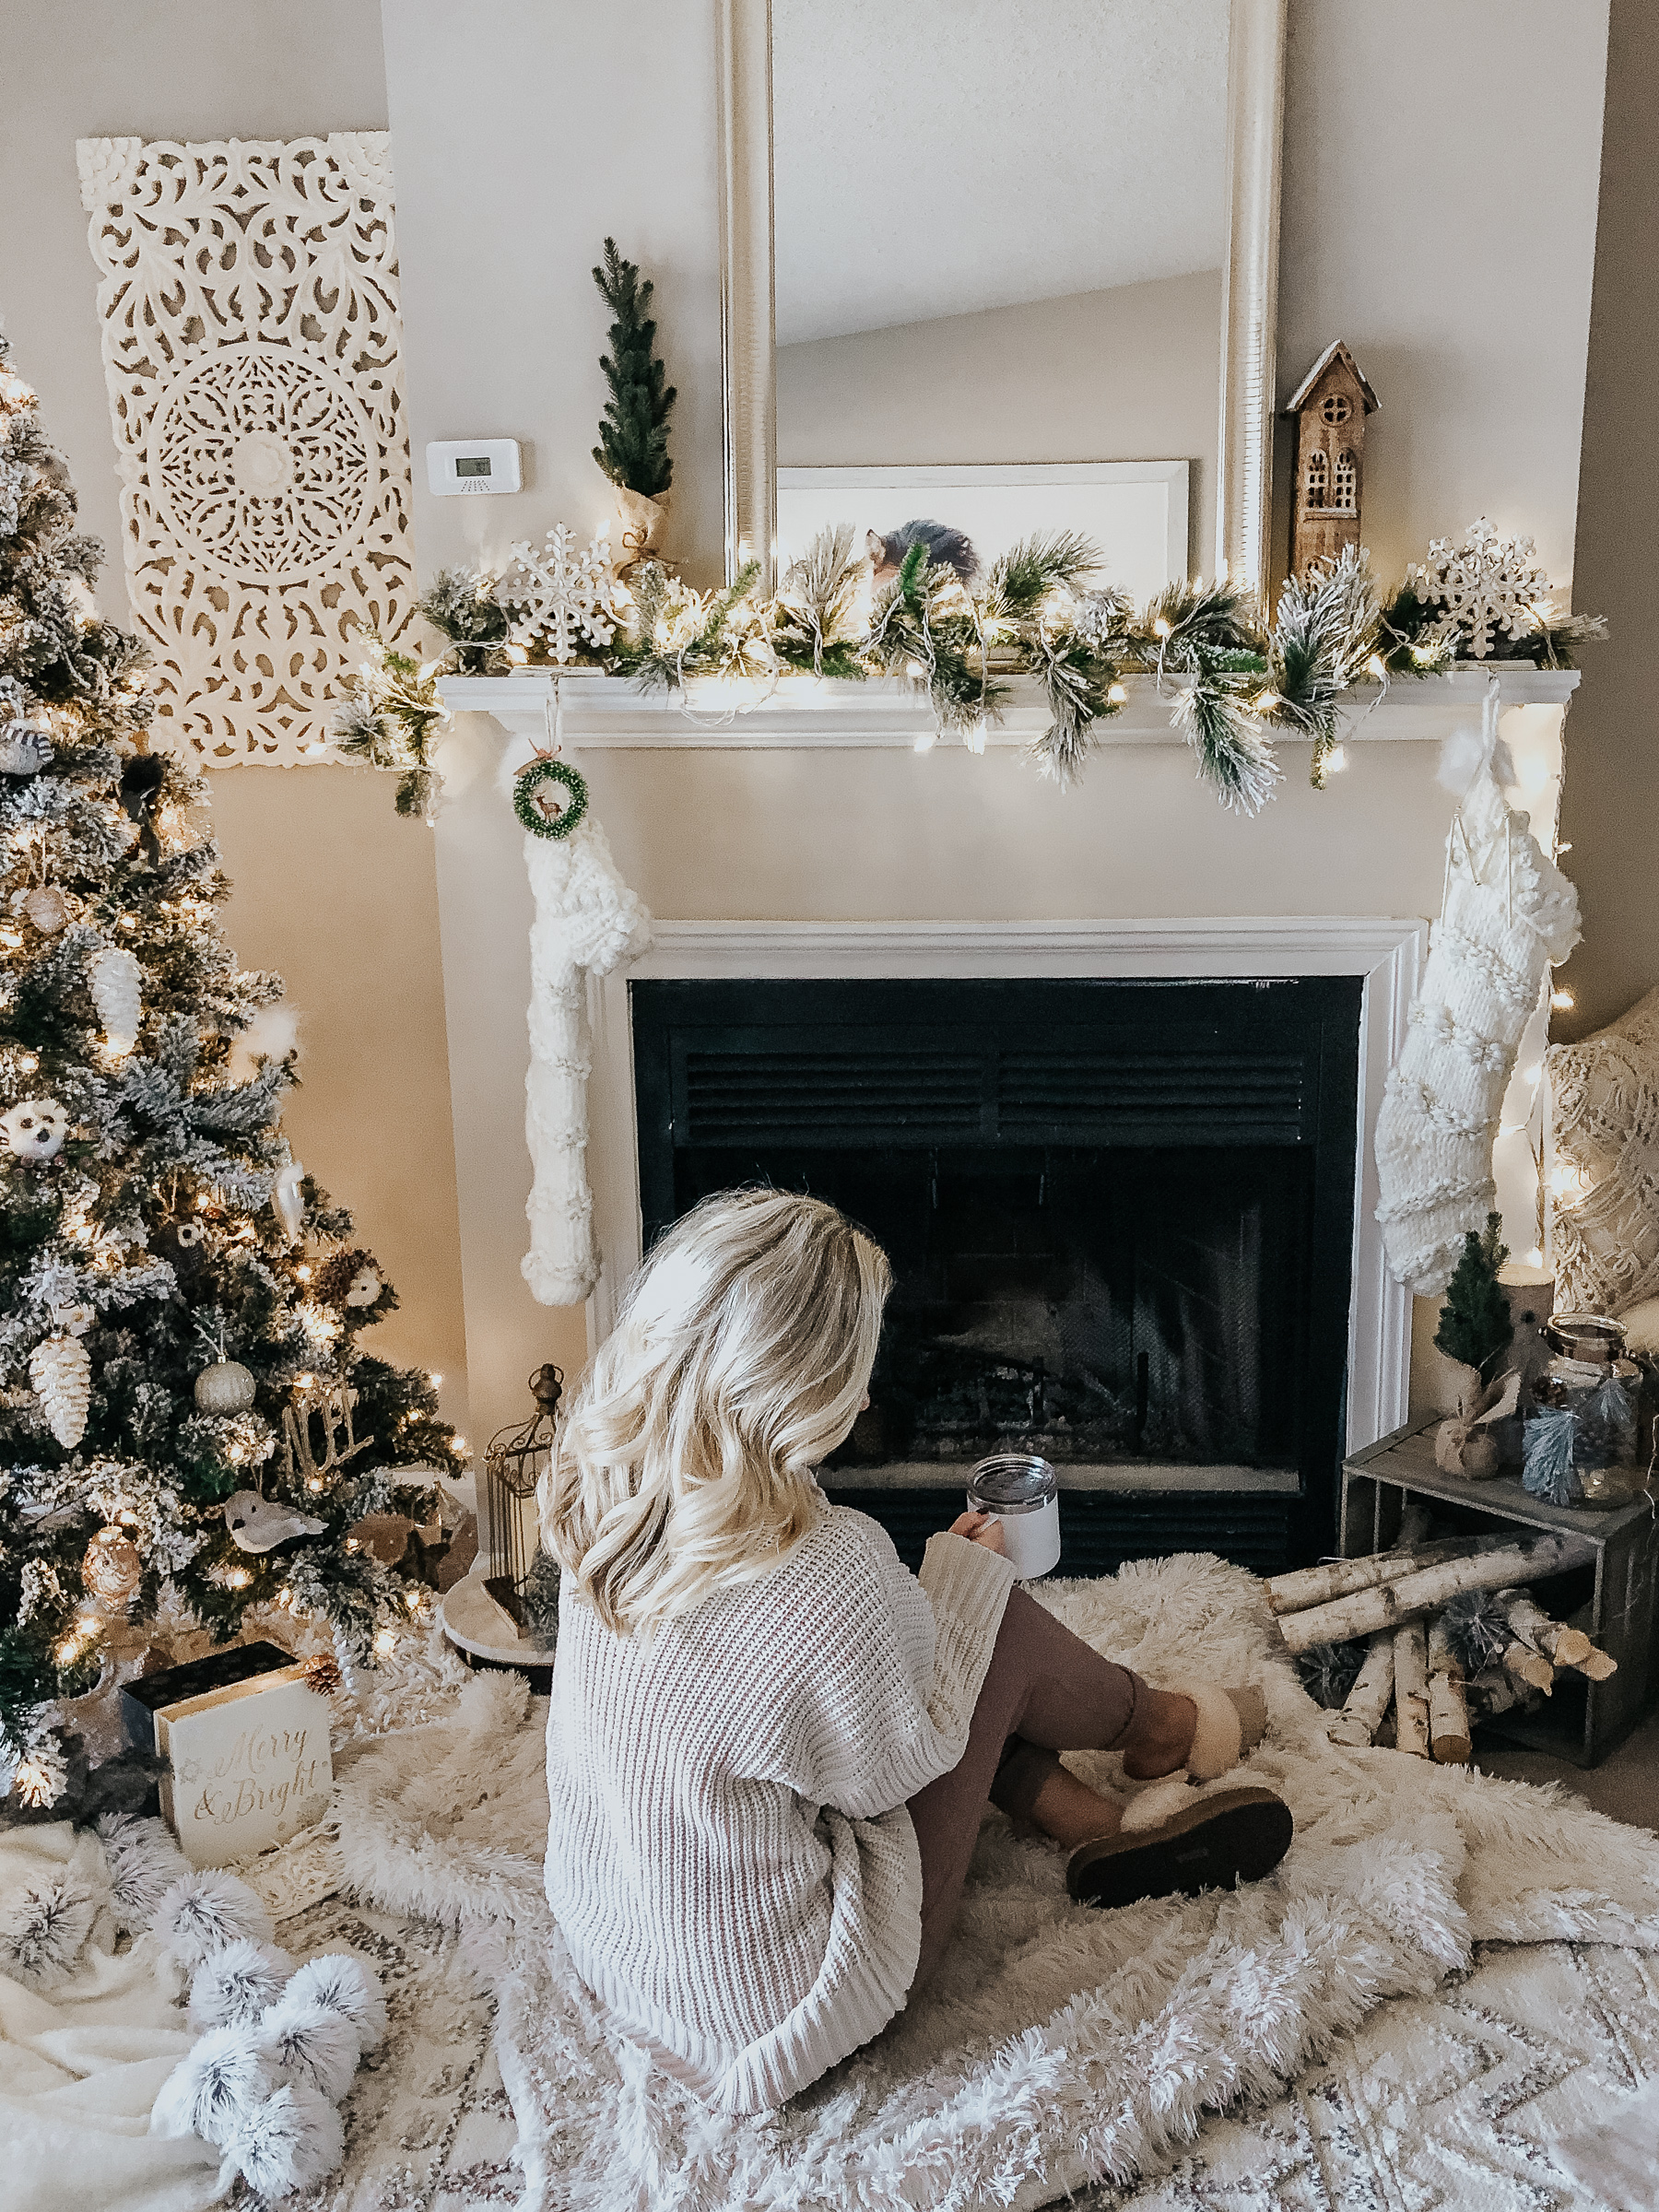 5 Tips For Decorating A Small Space For The Holidays Style